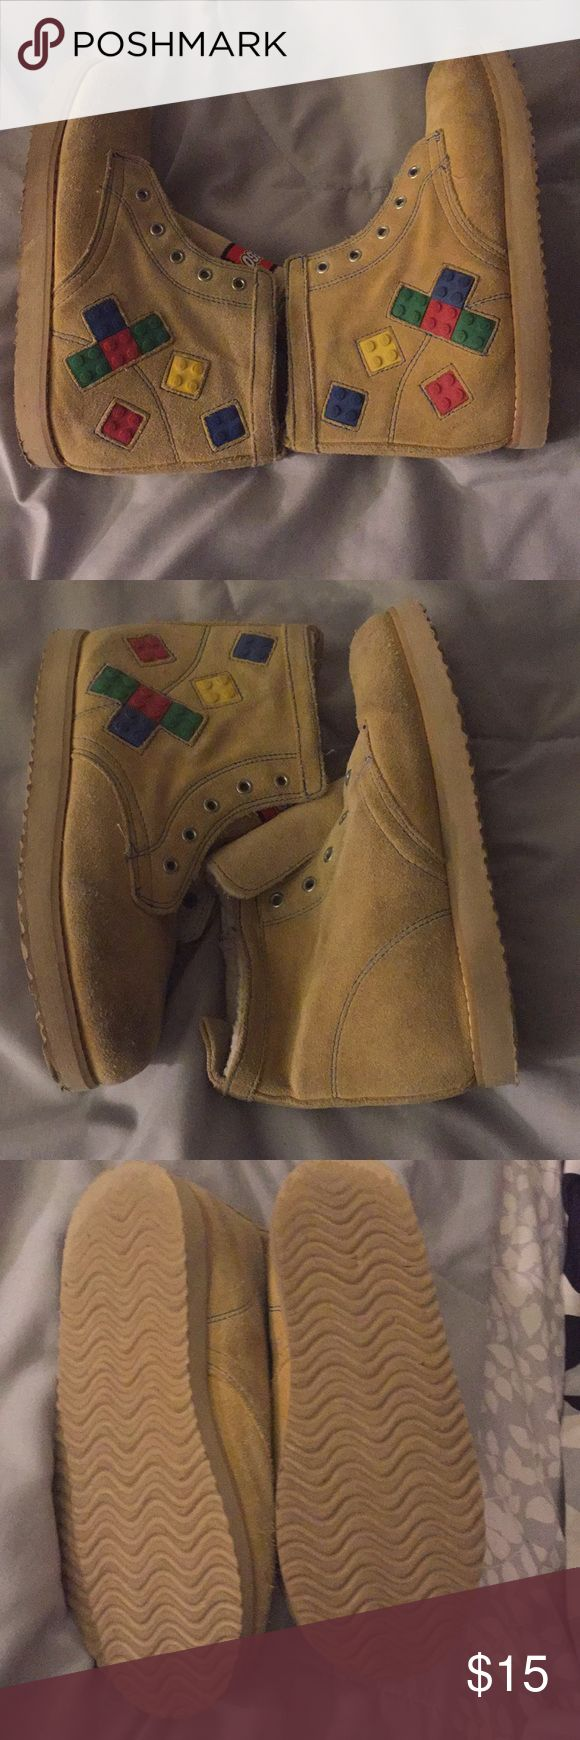 Suede Lego Kids Hiking Boots Lego Brand Boots / Good Condition/ No shoe strings/ you can add any color shoe string you kid loves. Lego Shoes Boots